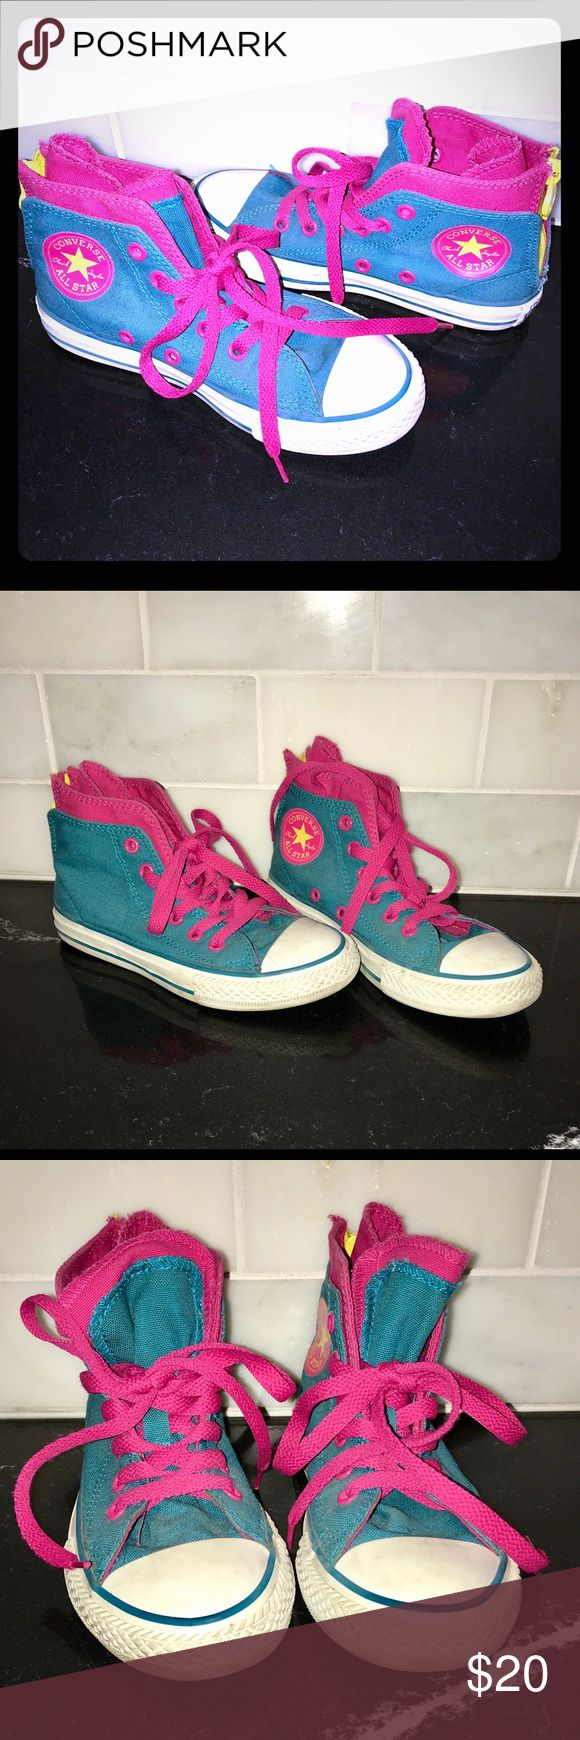 Converse High-tops Sneakers ❤️ Little Girls!! Adorable Converse High-tops EUC❗️ These may have been worn at most 5 times.  So cute ❤️ Converse Shoes Sneakers